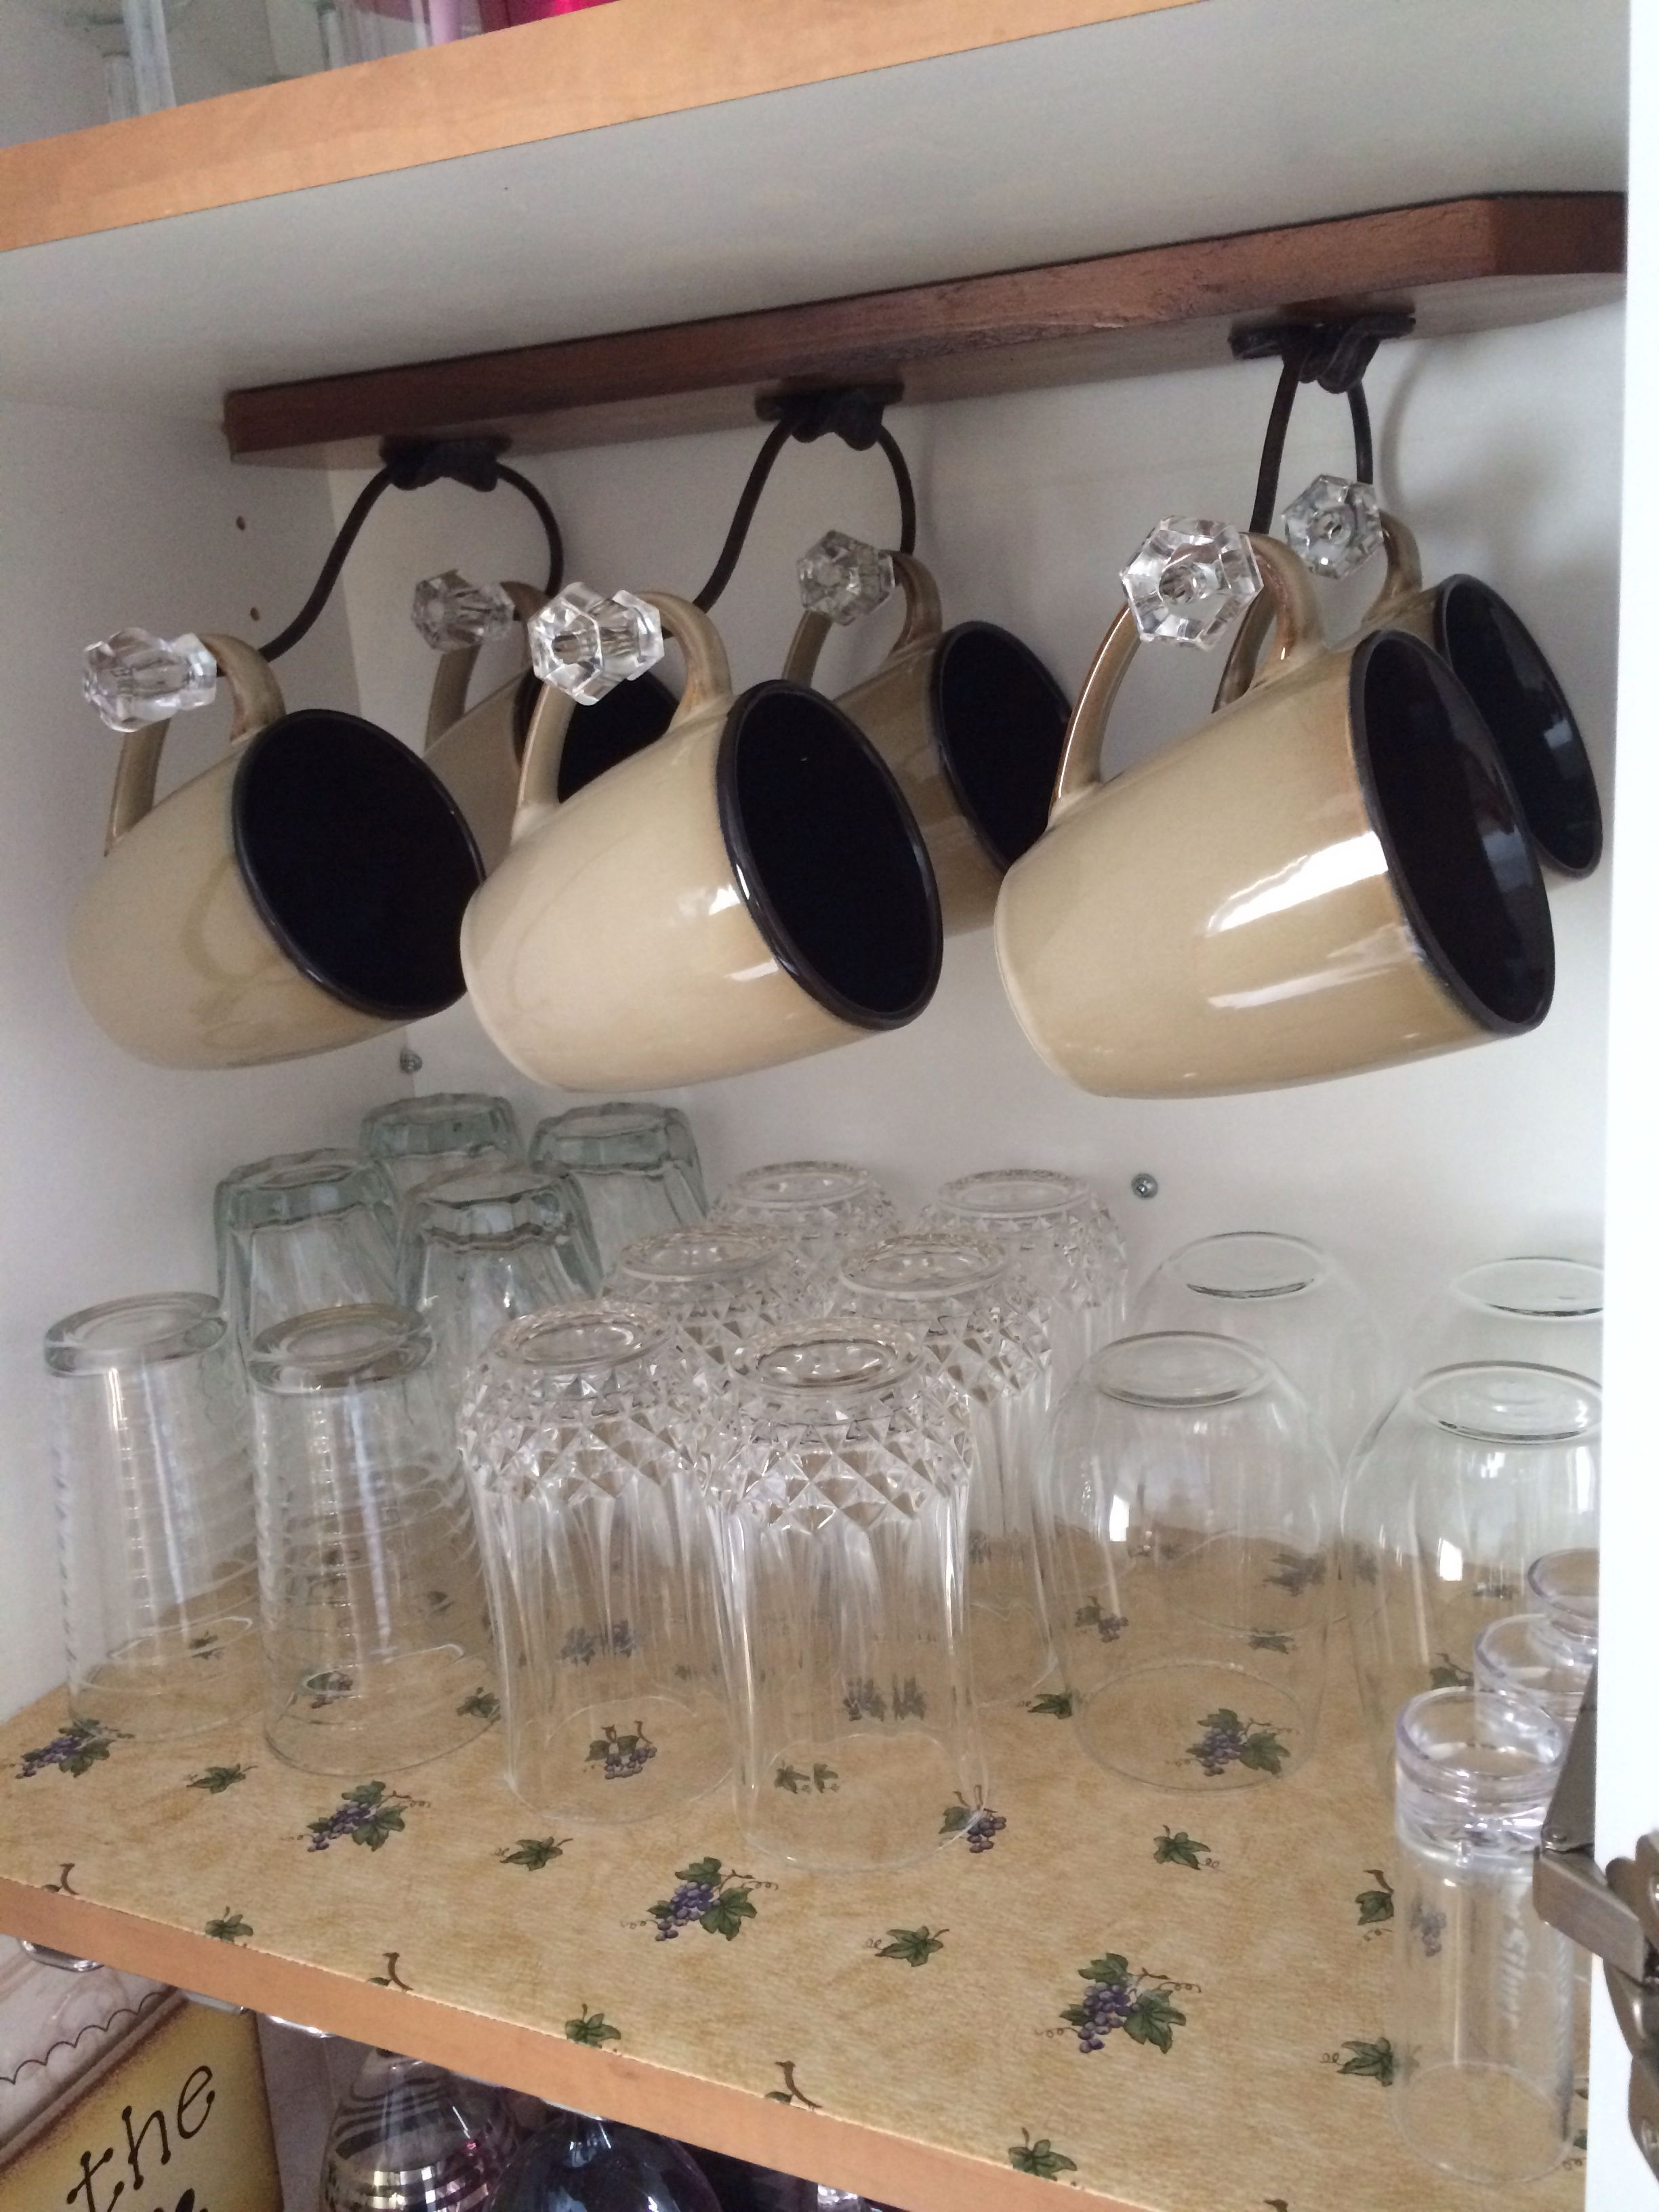 Turned A Coat Hanger Into A Coffee Cup Hanger Coffee Cups Diy Creative Decor Coffee Cups